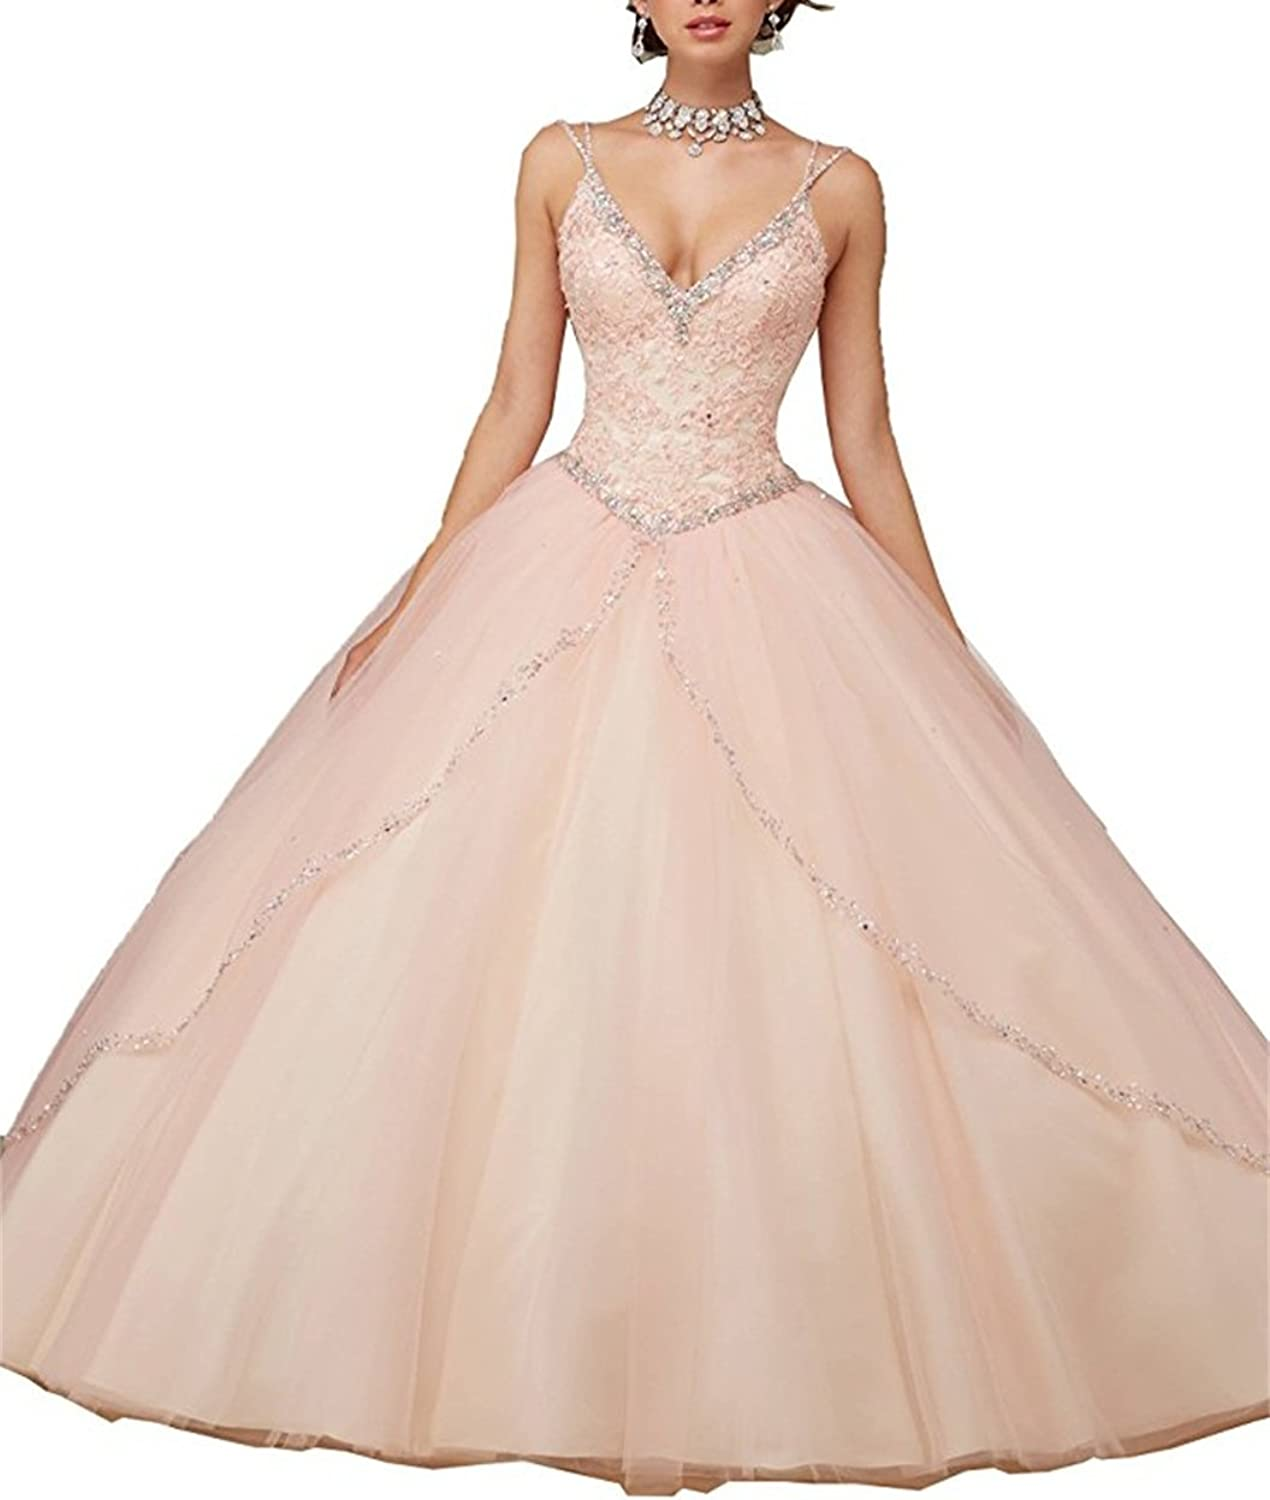 XYHDTQ Women's Sweetheart Prom Long Dresses Quinceanera Gown Beaded Sequins